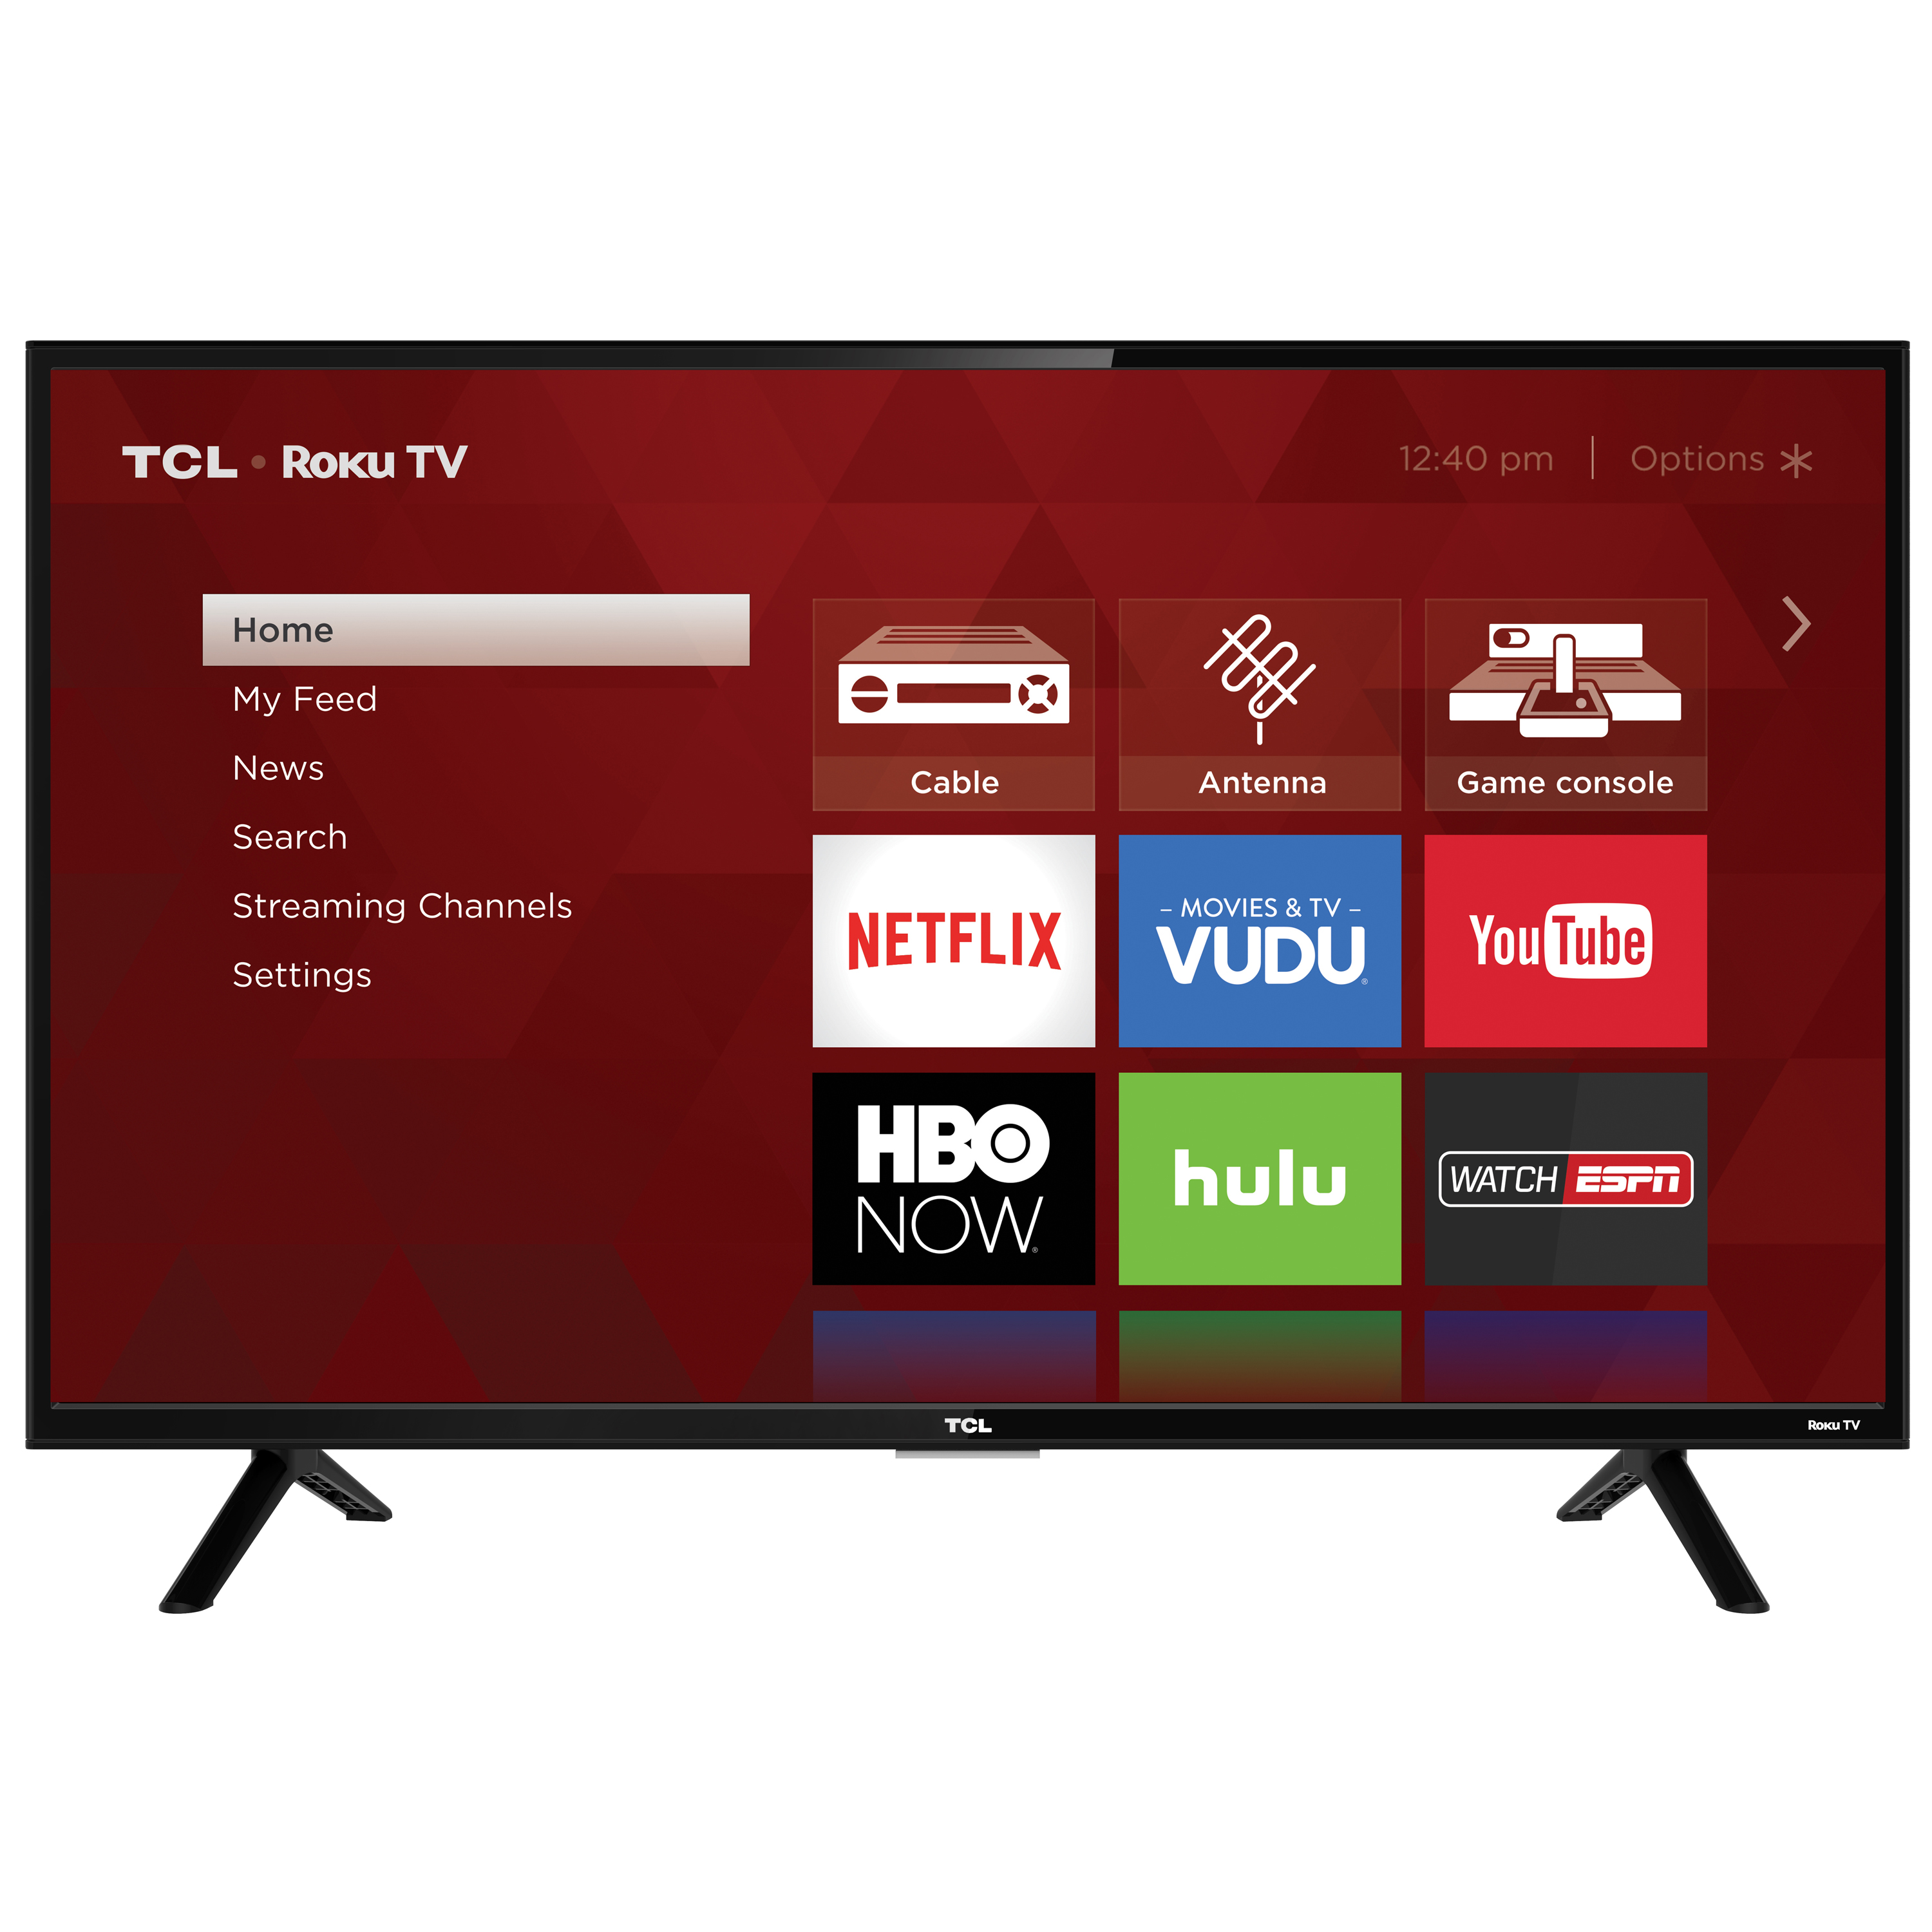 TCL 32S301 32-inch 720p 60Hz Roku Smart LED TV (Certified Refurbished) - Best Reviews Guide